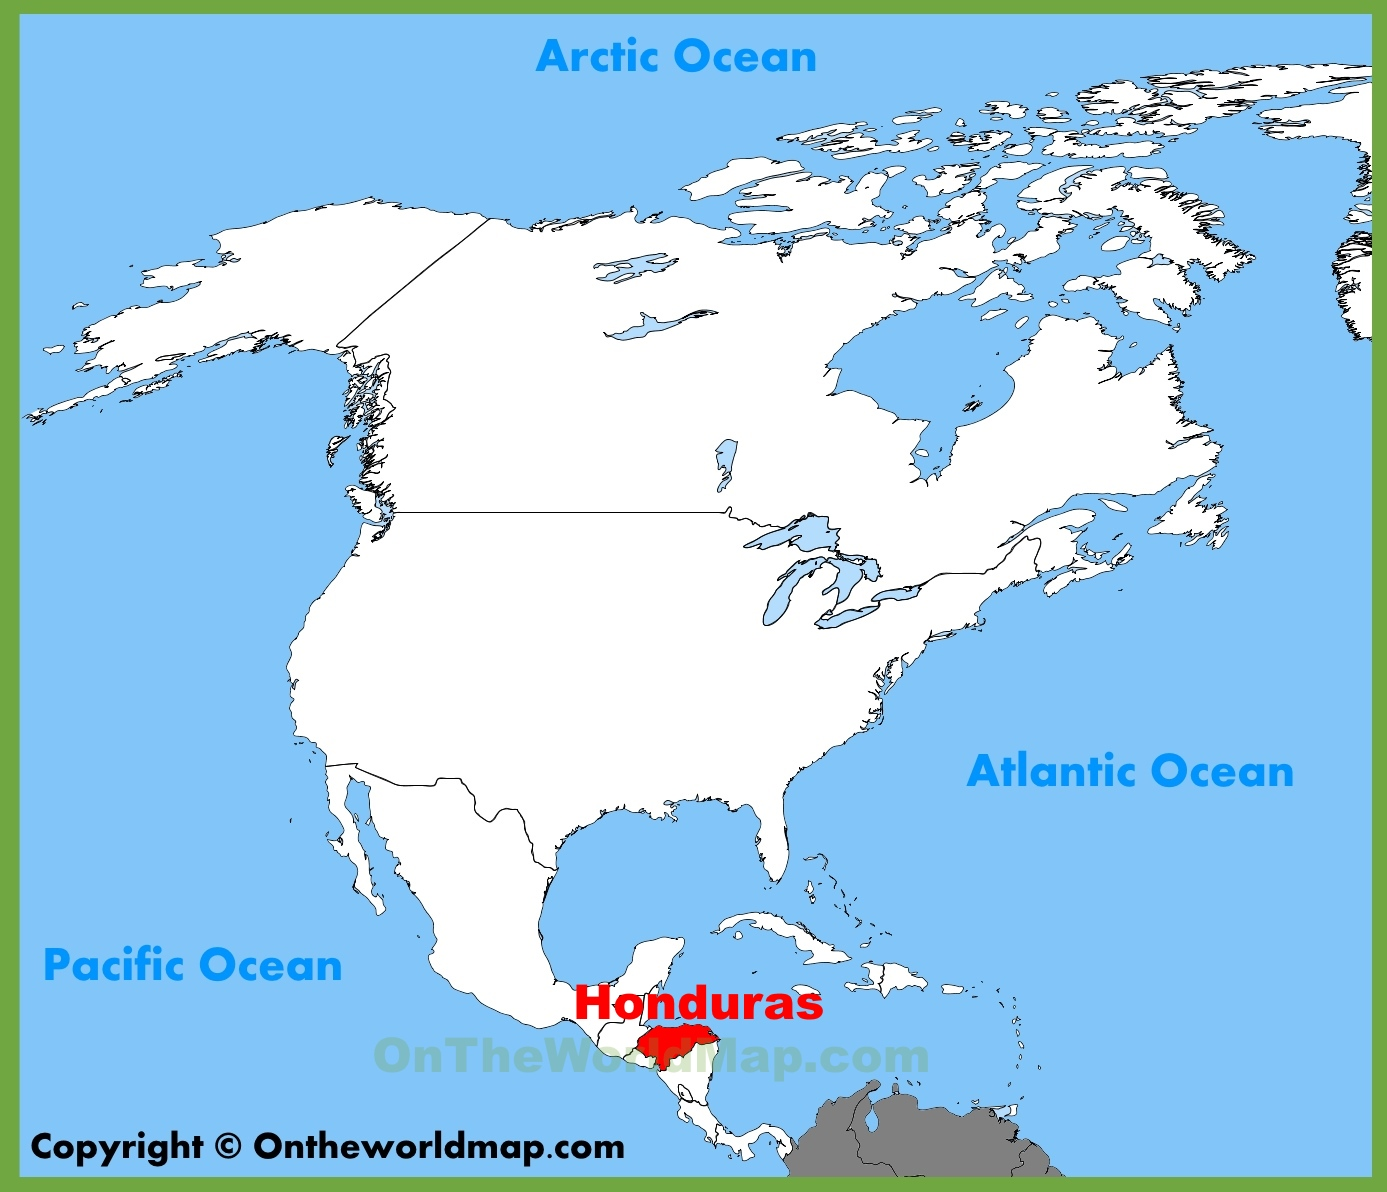 Honduras location on the North America map